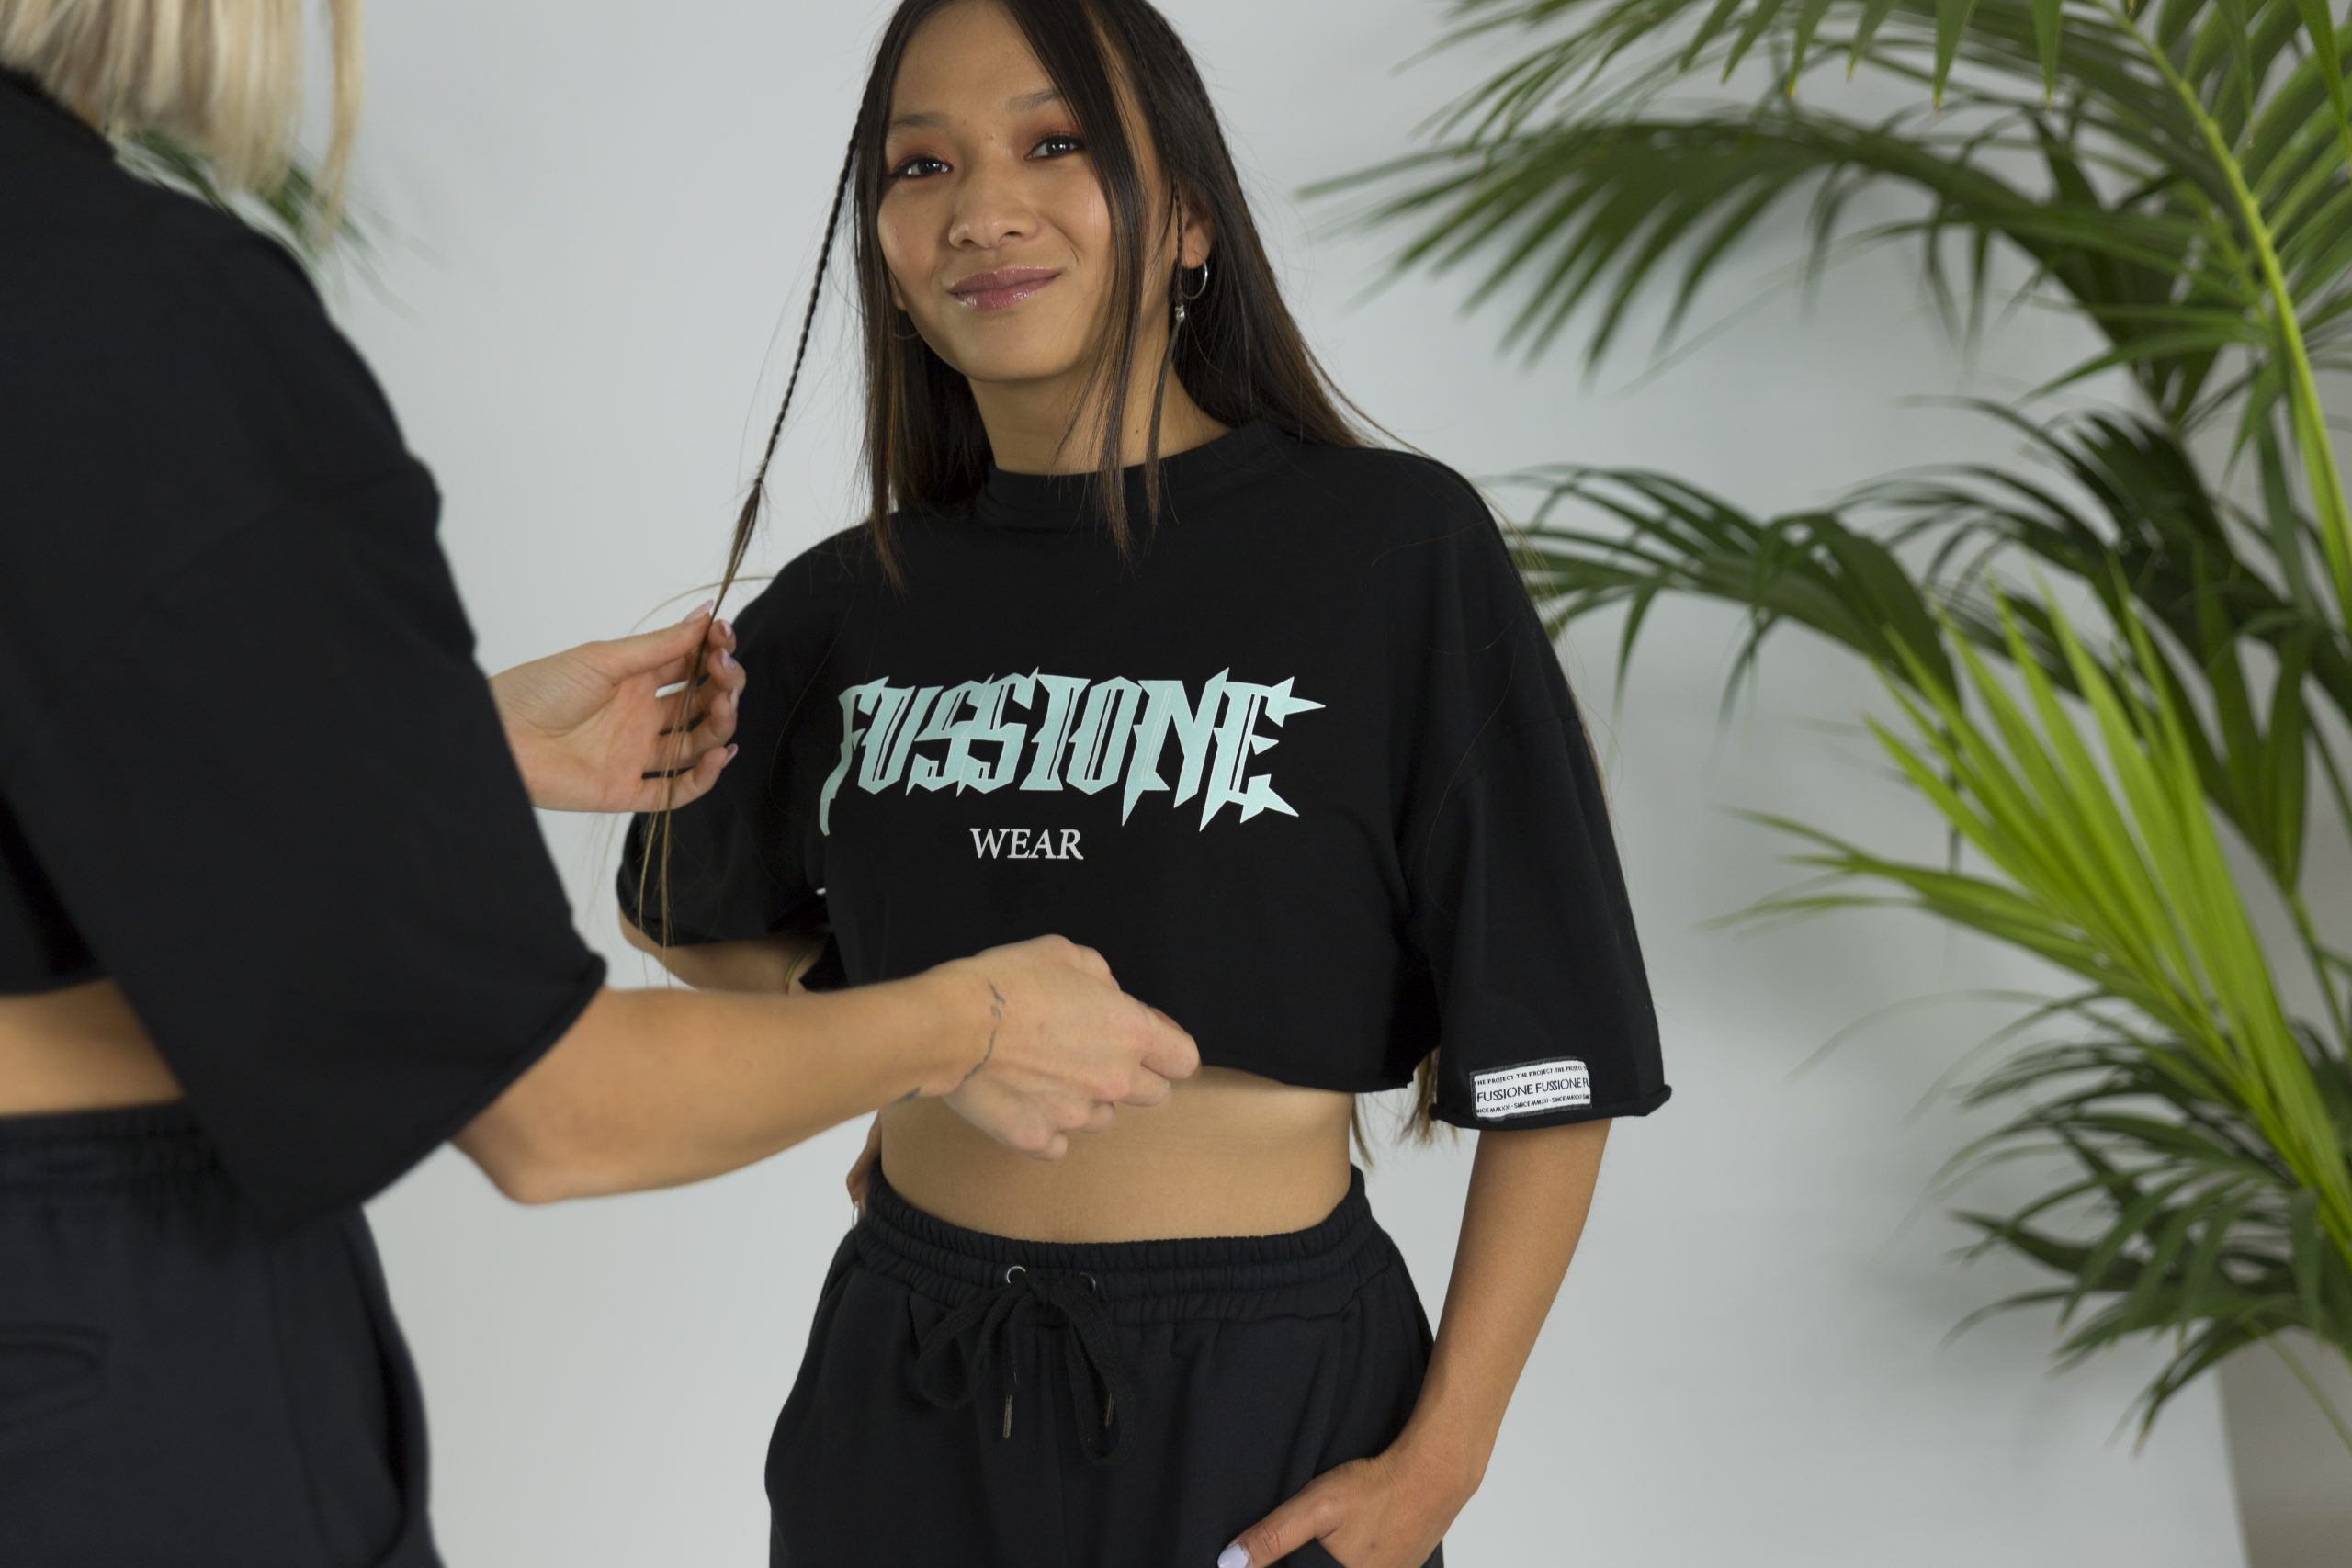 Summer Up 01 Fussione Wear